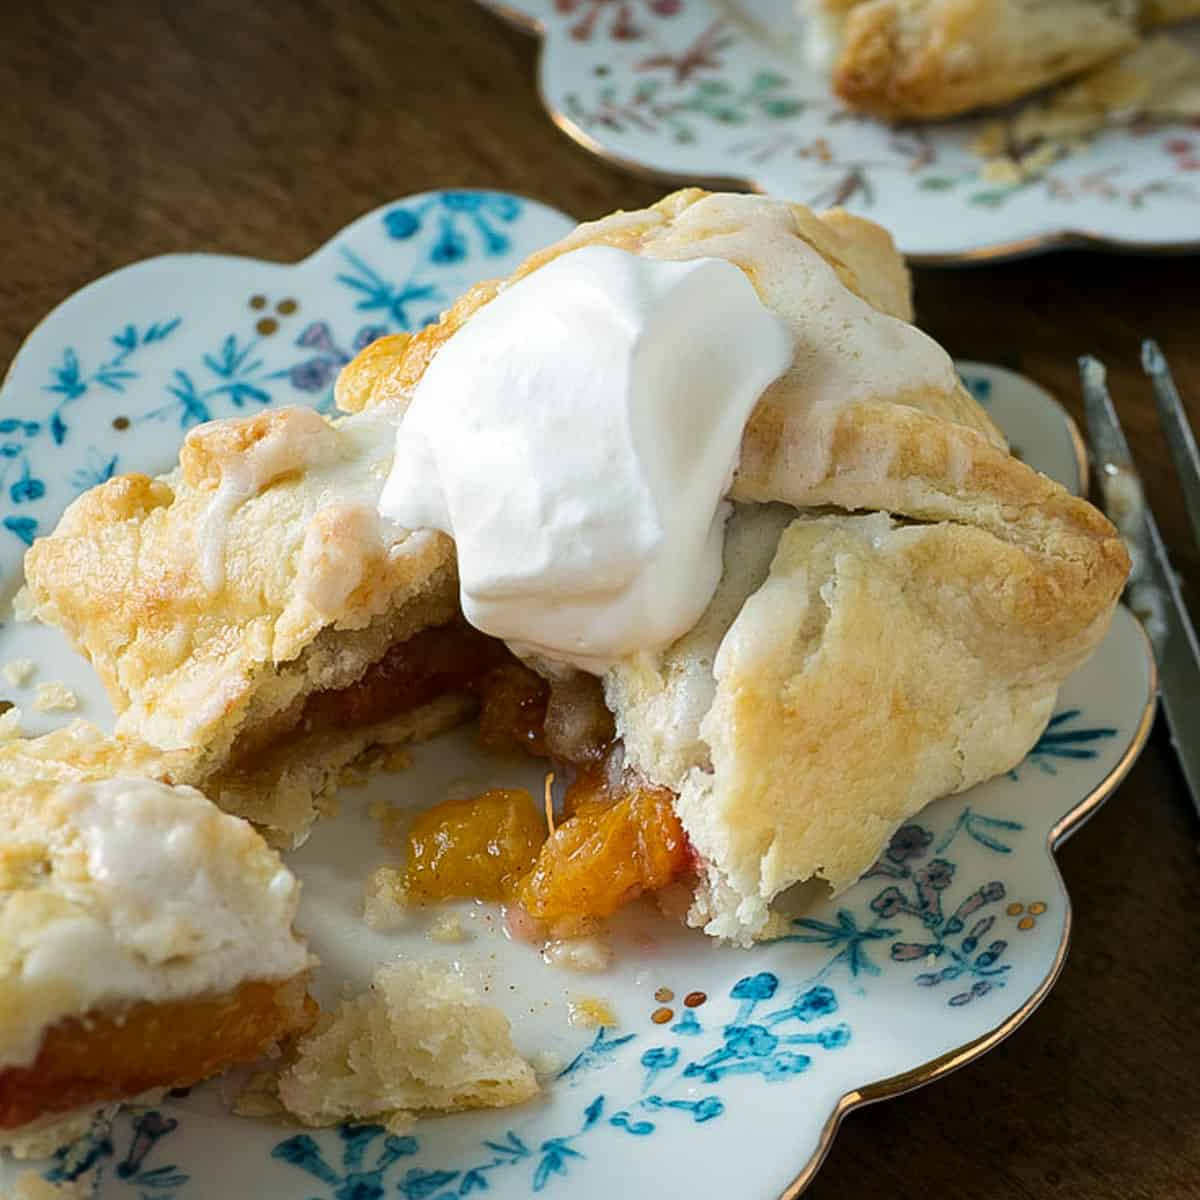 A peach dumpling topped with whipped cream with a bite taken out